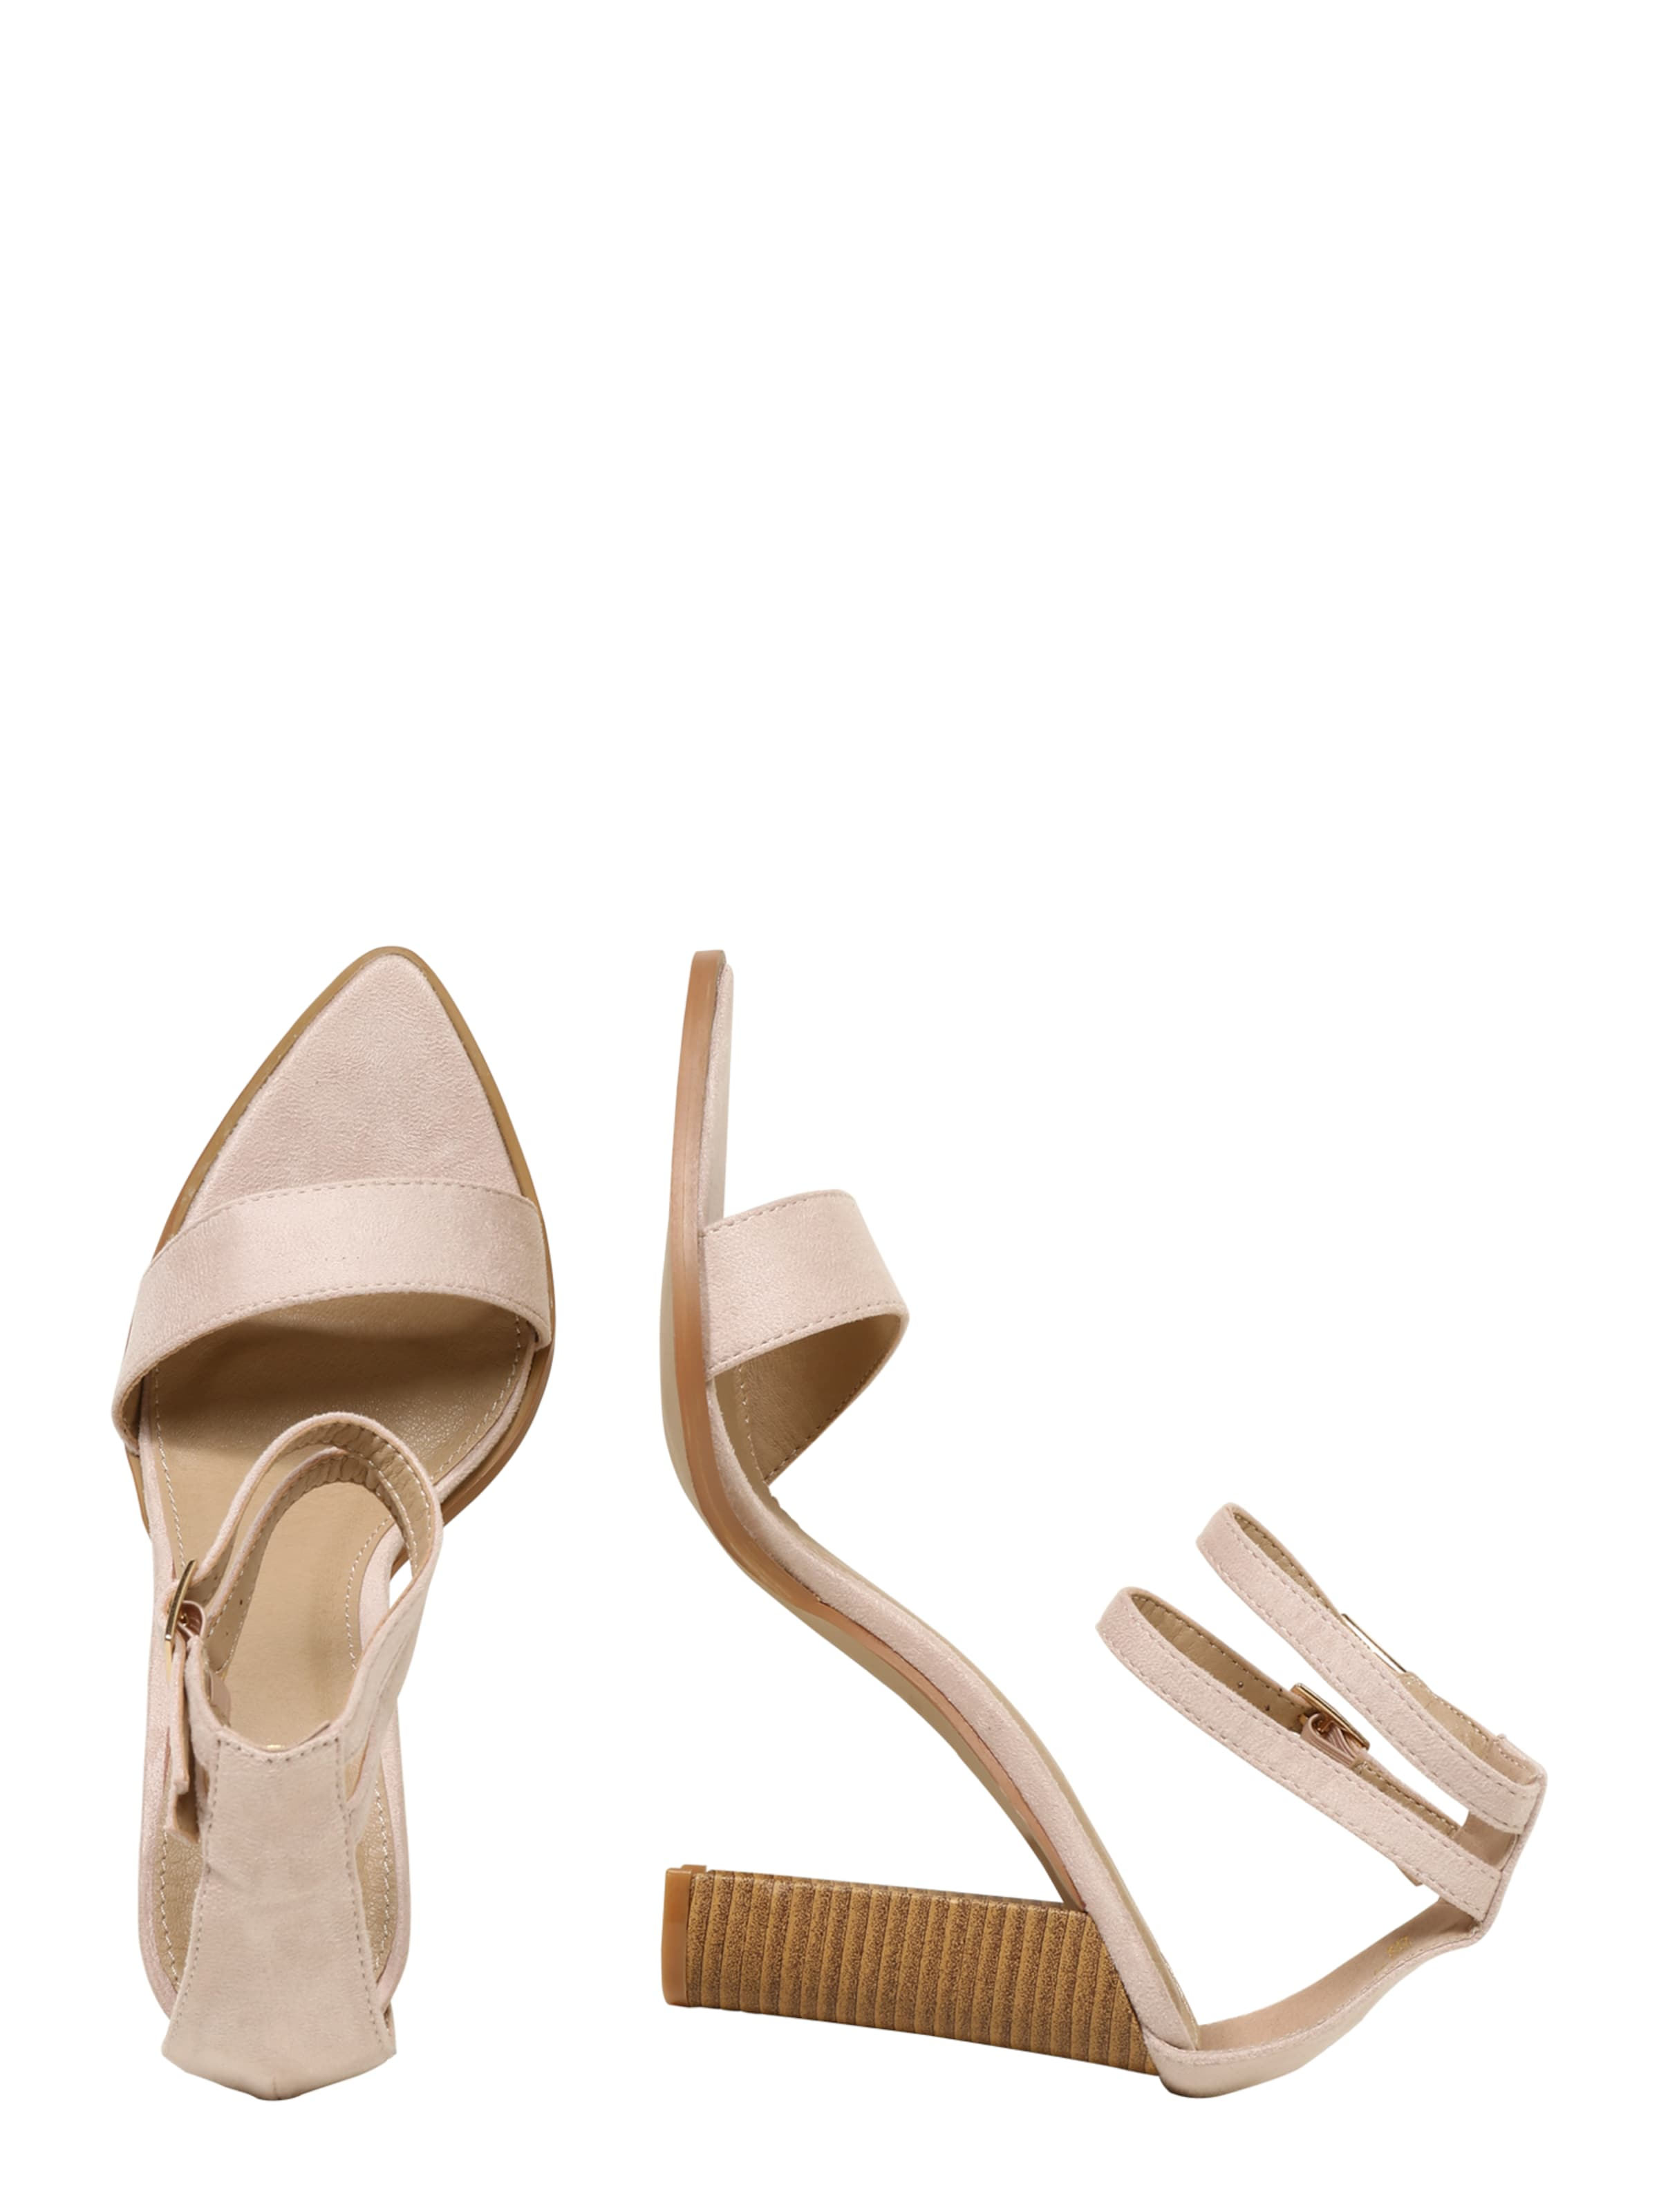 1' RaidEscarpins In RaidEscarpins 'emer 'emer In Beige 1' Beige cTFK31Jl